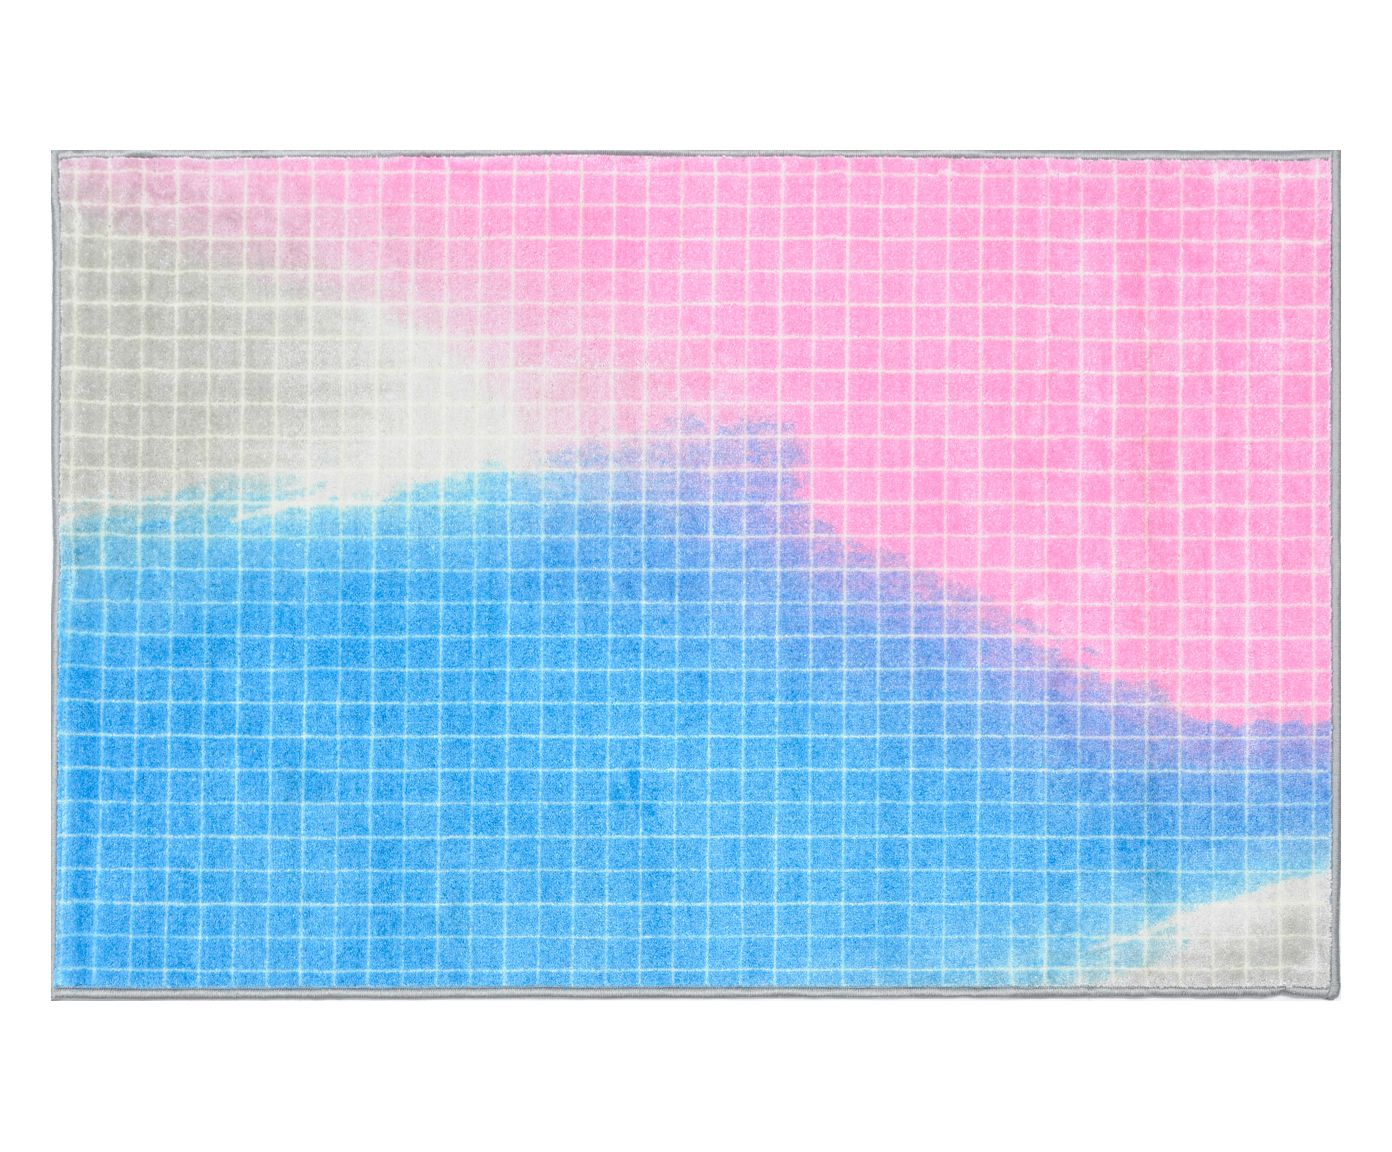 Tapete Italy Candy Drops - 200X300Cm | Westwing.com.br